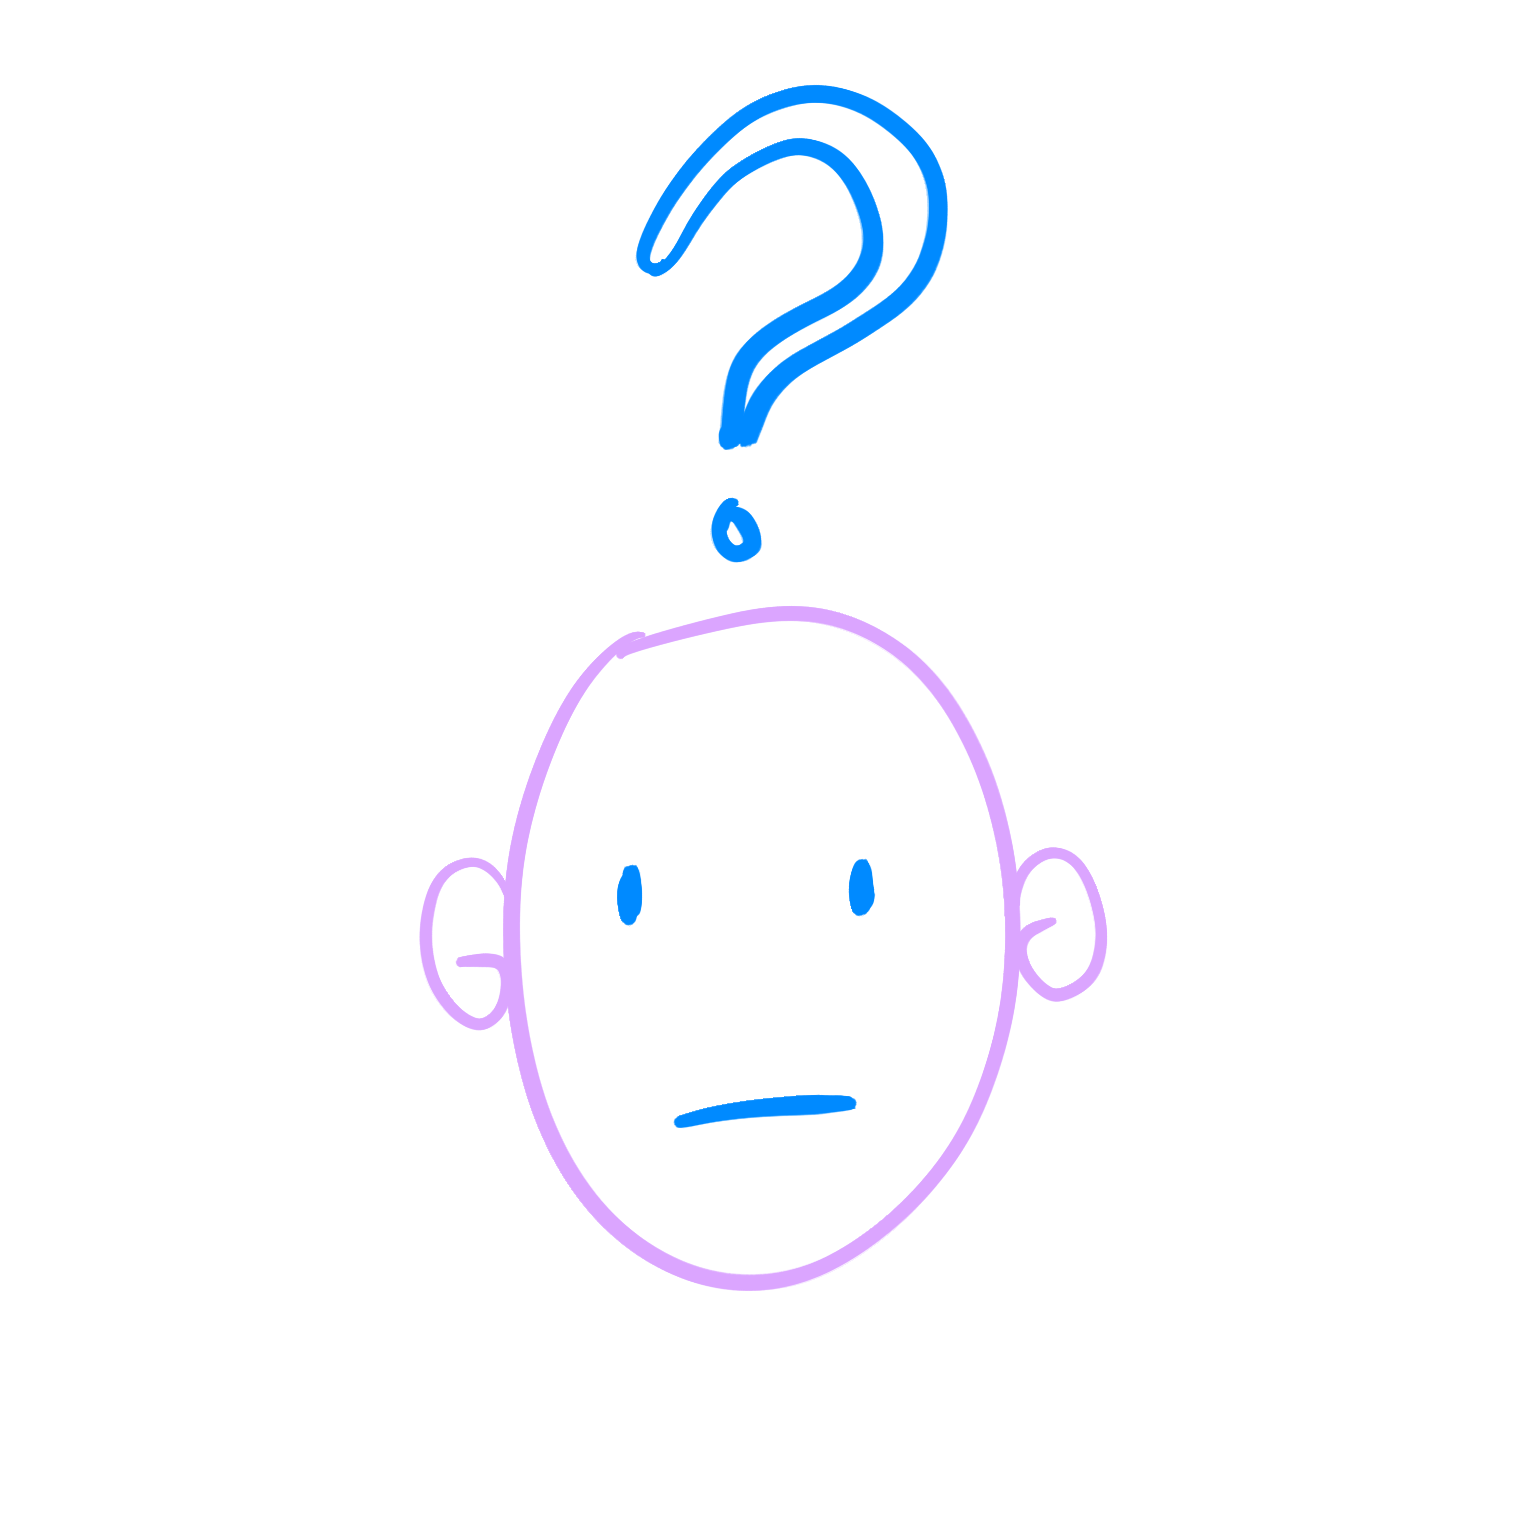 A confused face with a question mark above it